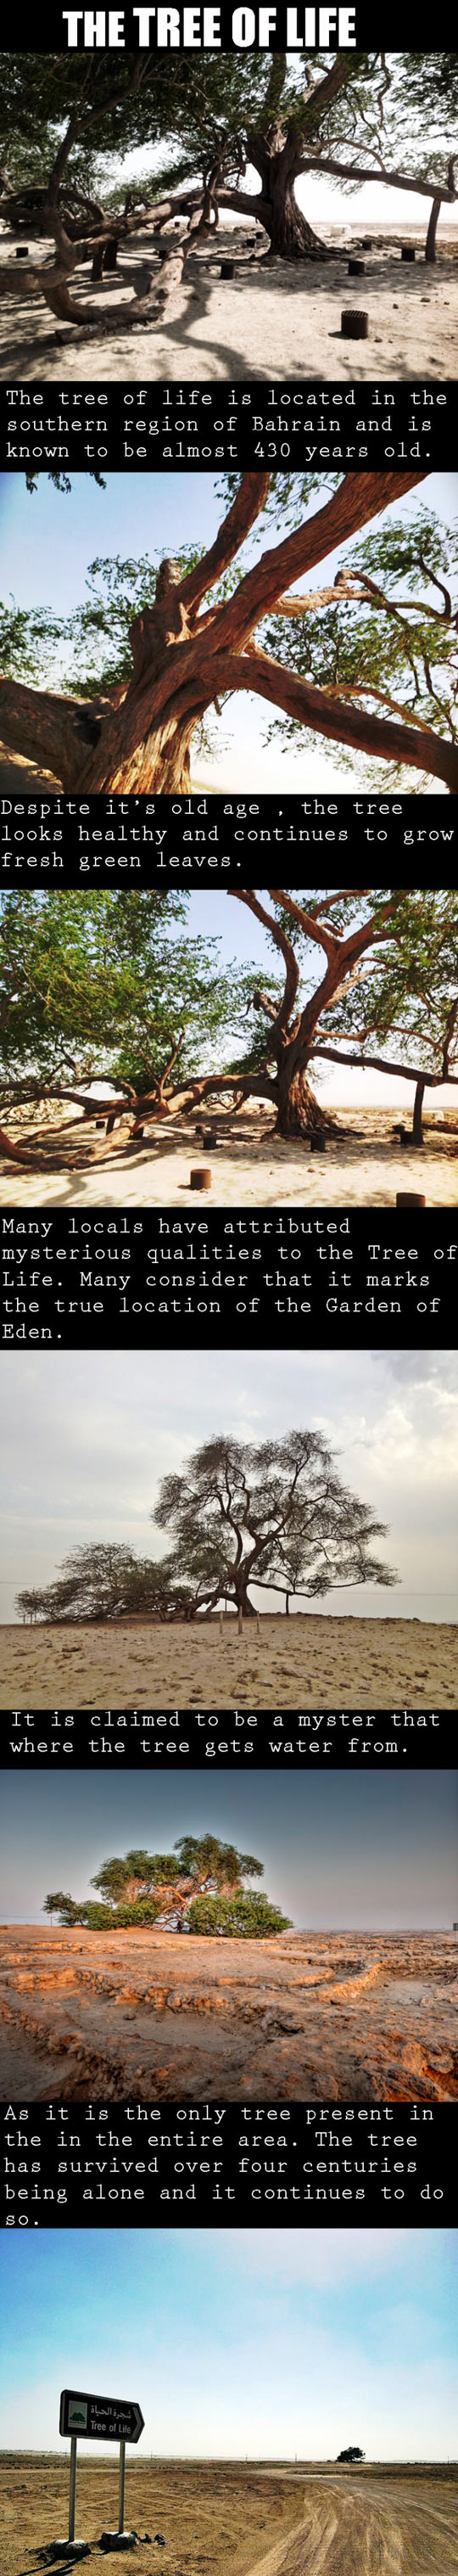 A Miraculous Survival In The Desert width=